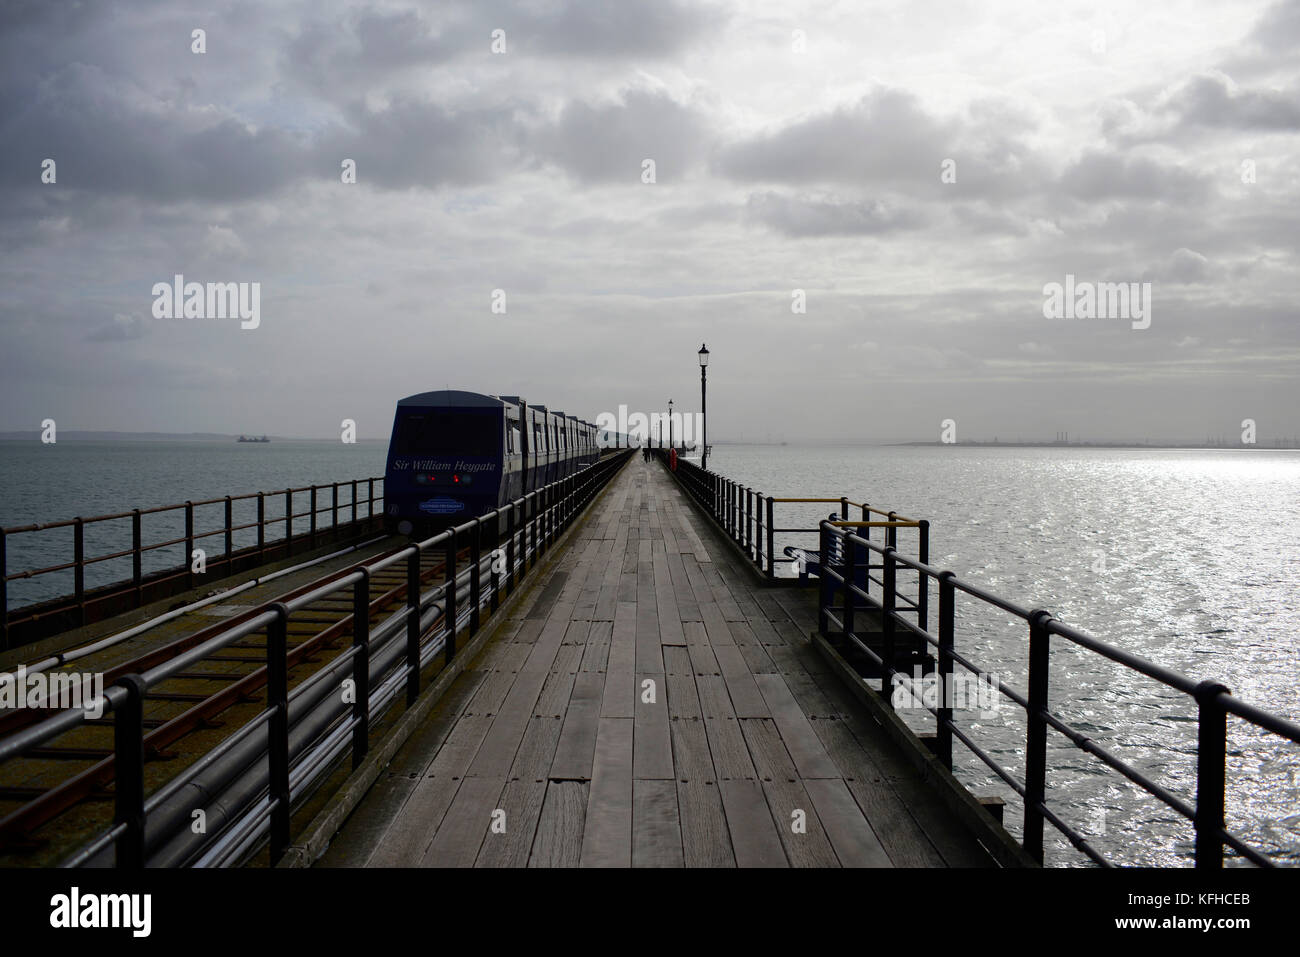 Southend Pier railway heading towards the Thames Estuary. Wide view. Space for copy - Stock Image